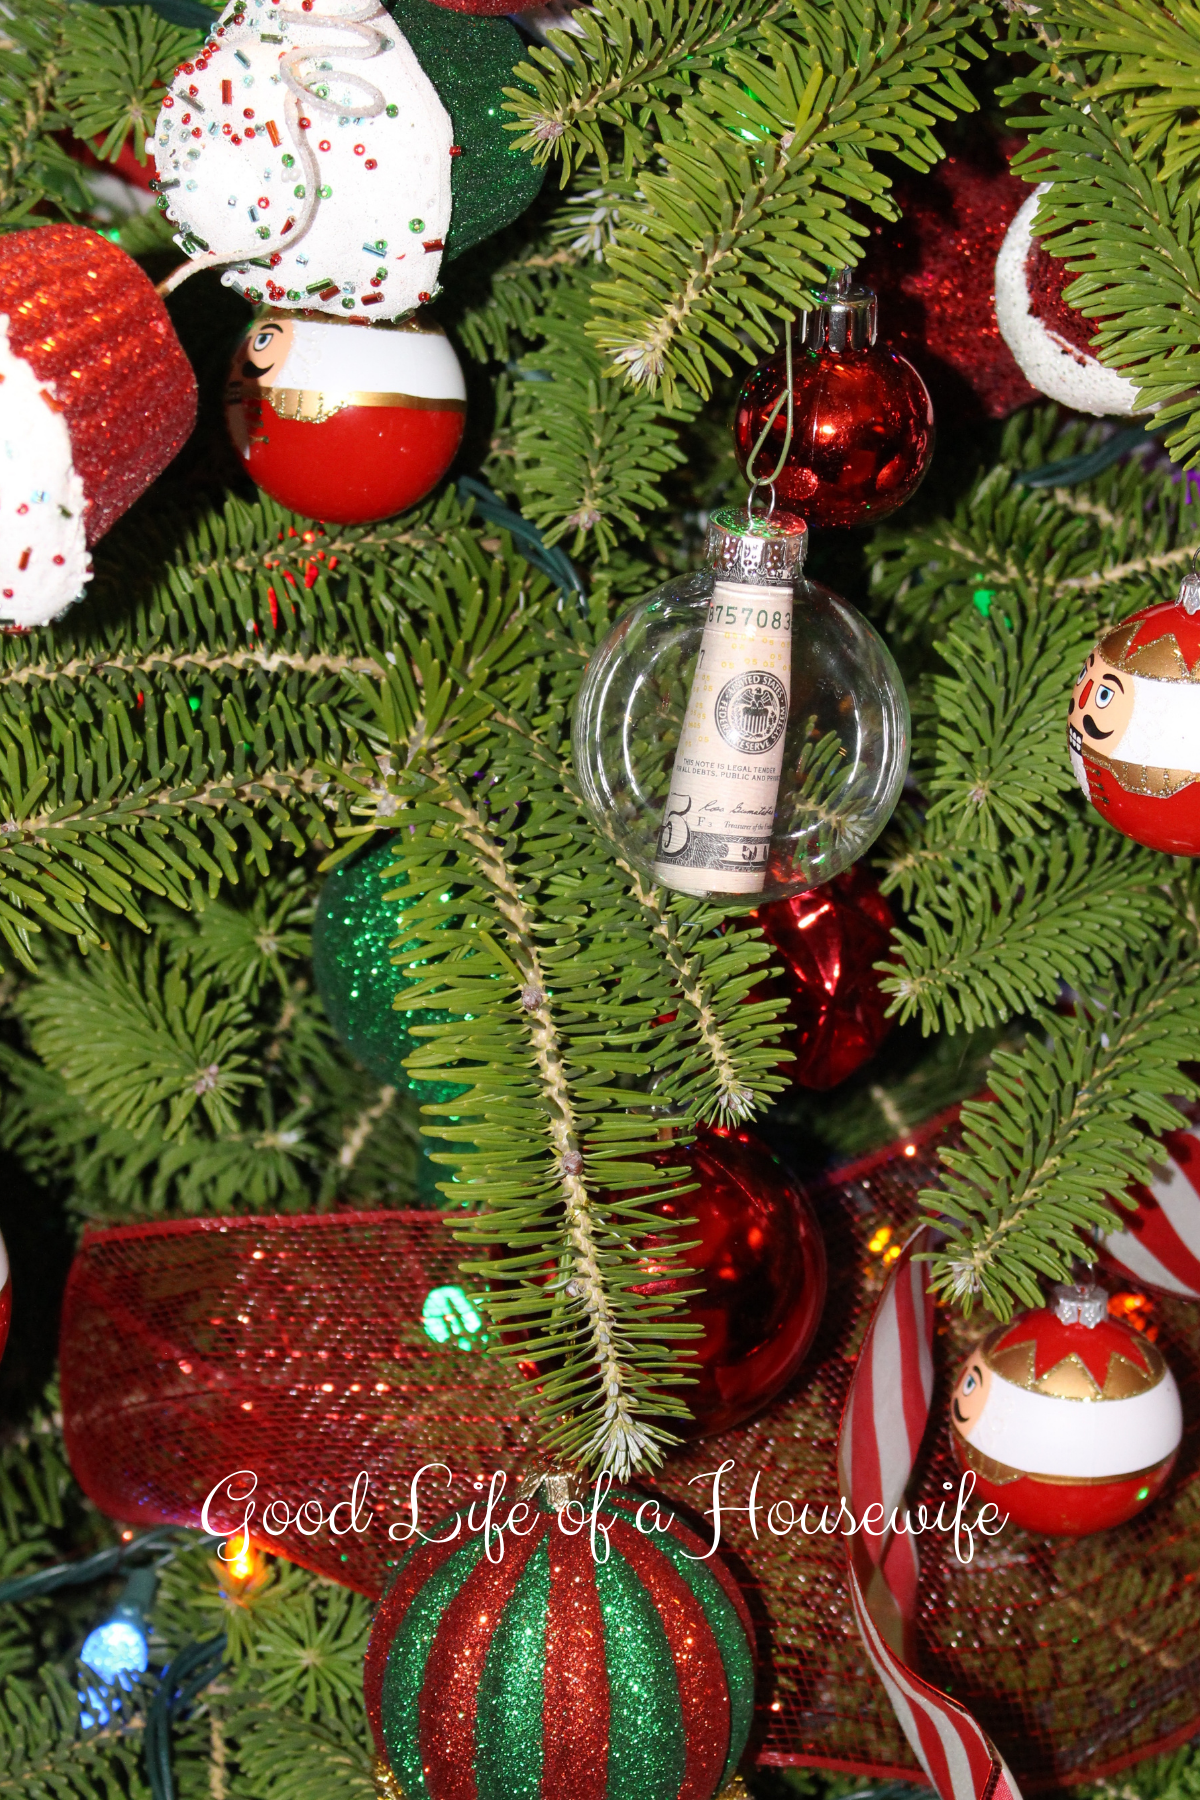 Christmas Money Tree - Christmas Cash Gift Ideas - Goof Life of a Housewife